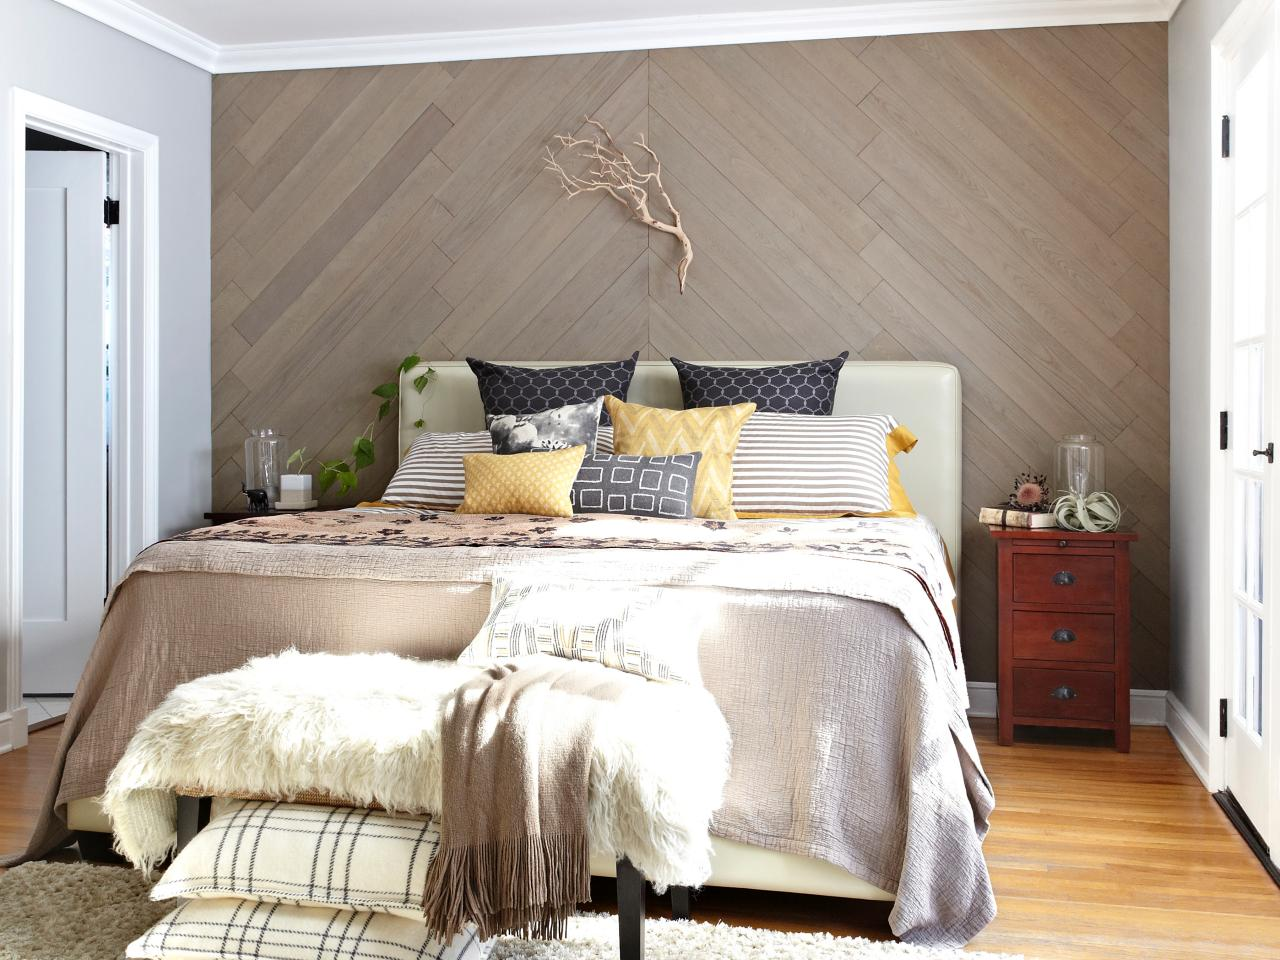 How To Whitewash Wood Paneling